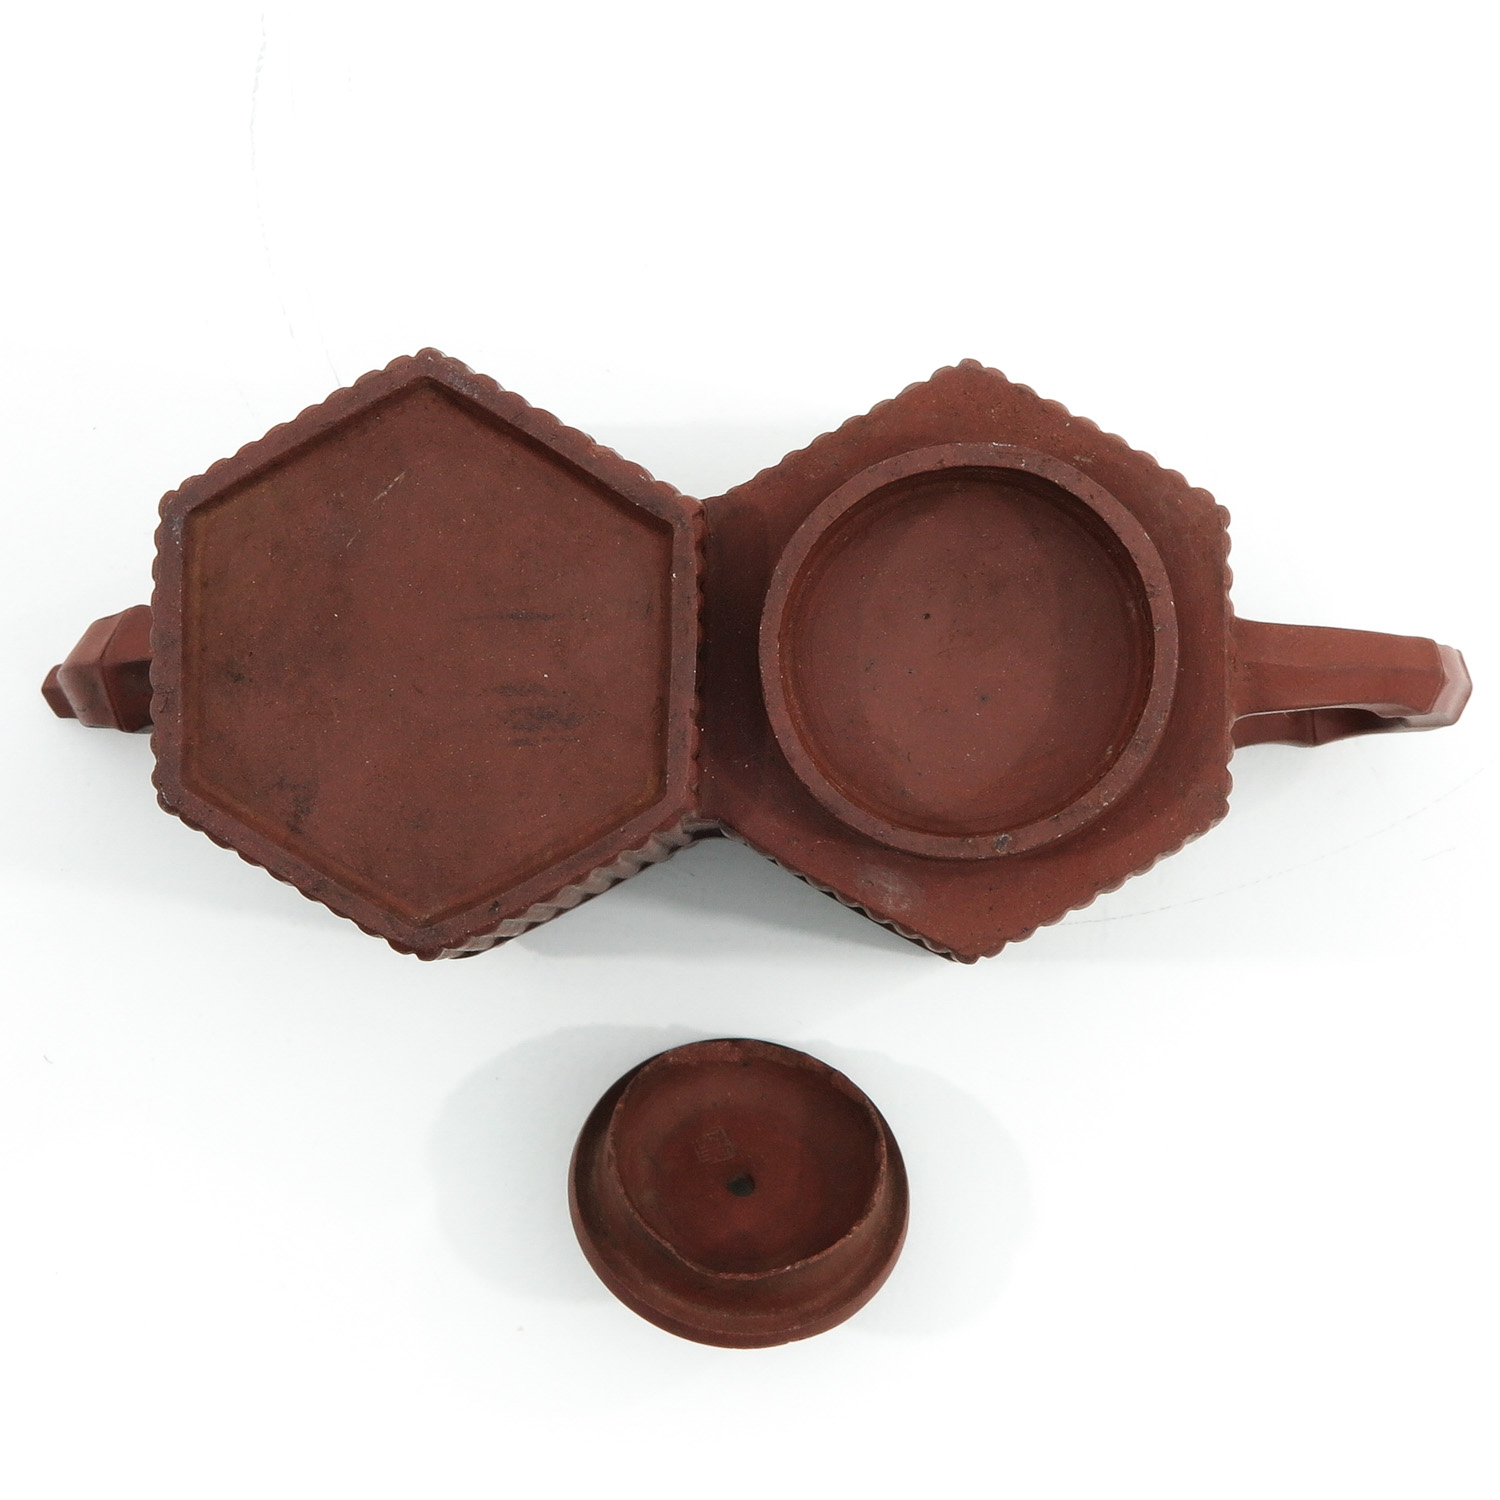 A Double Yixing Teapot - Image 6 of 9